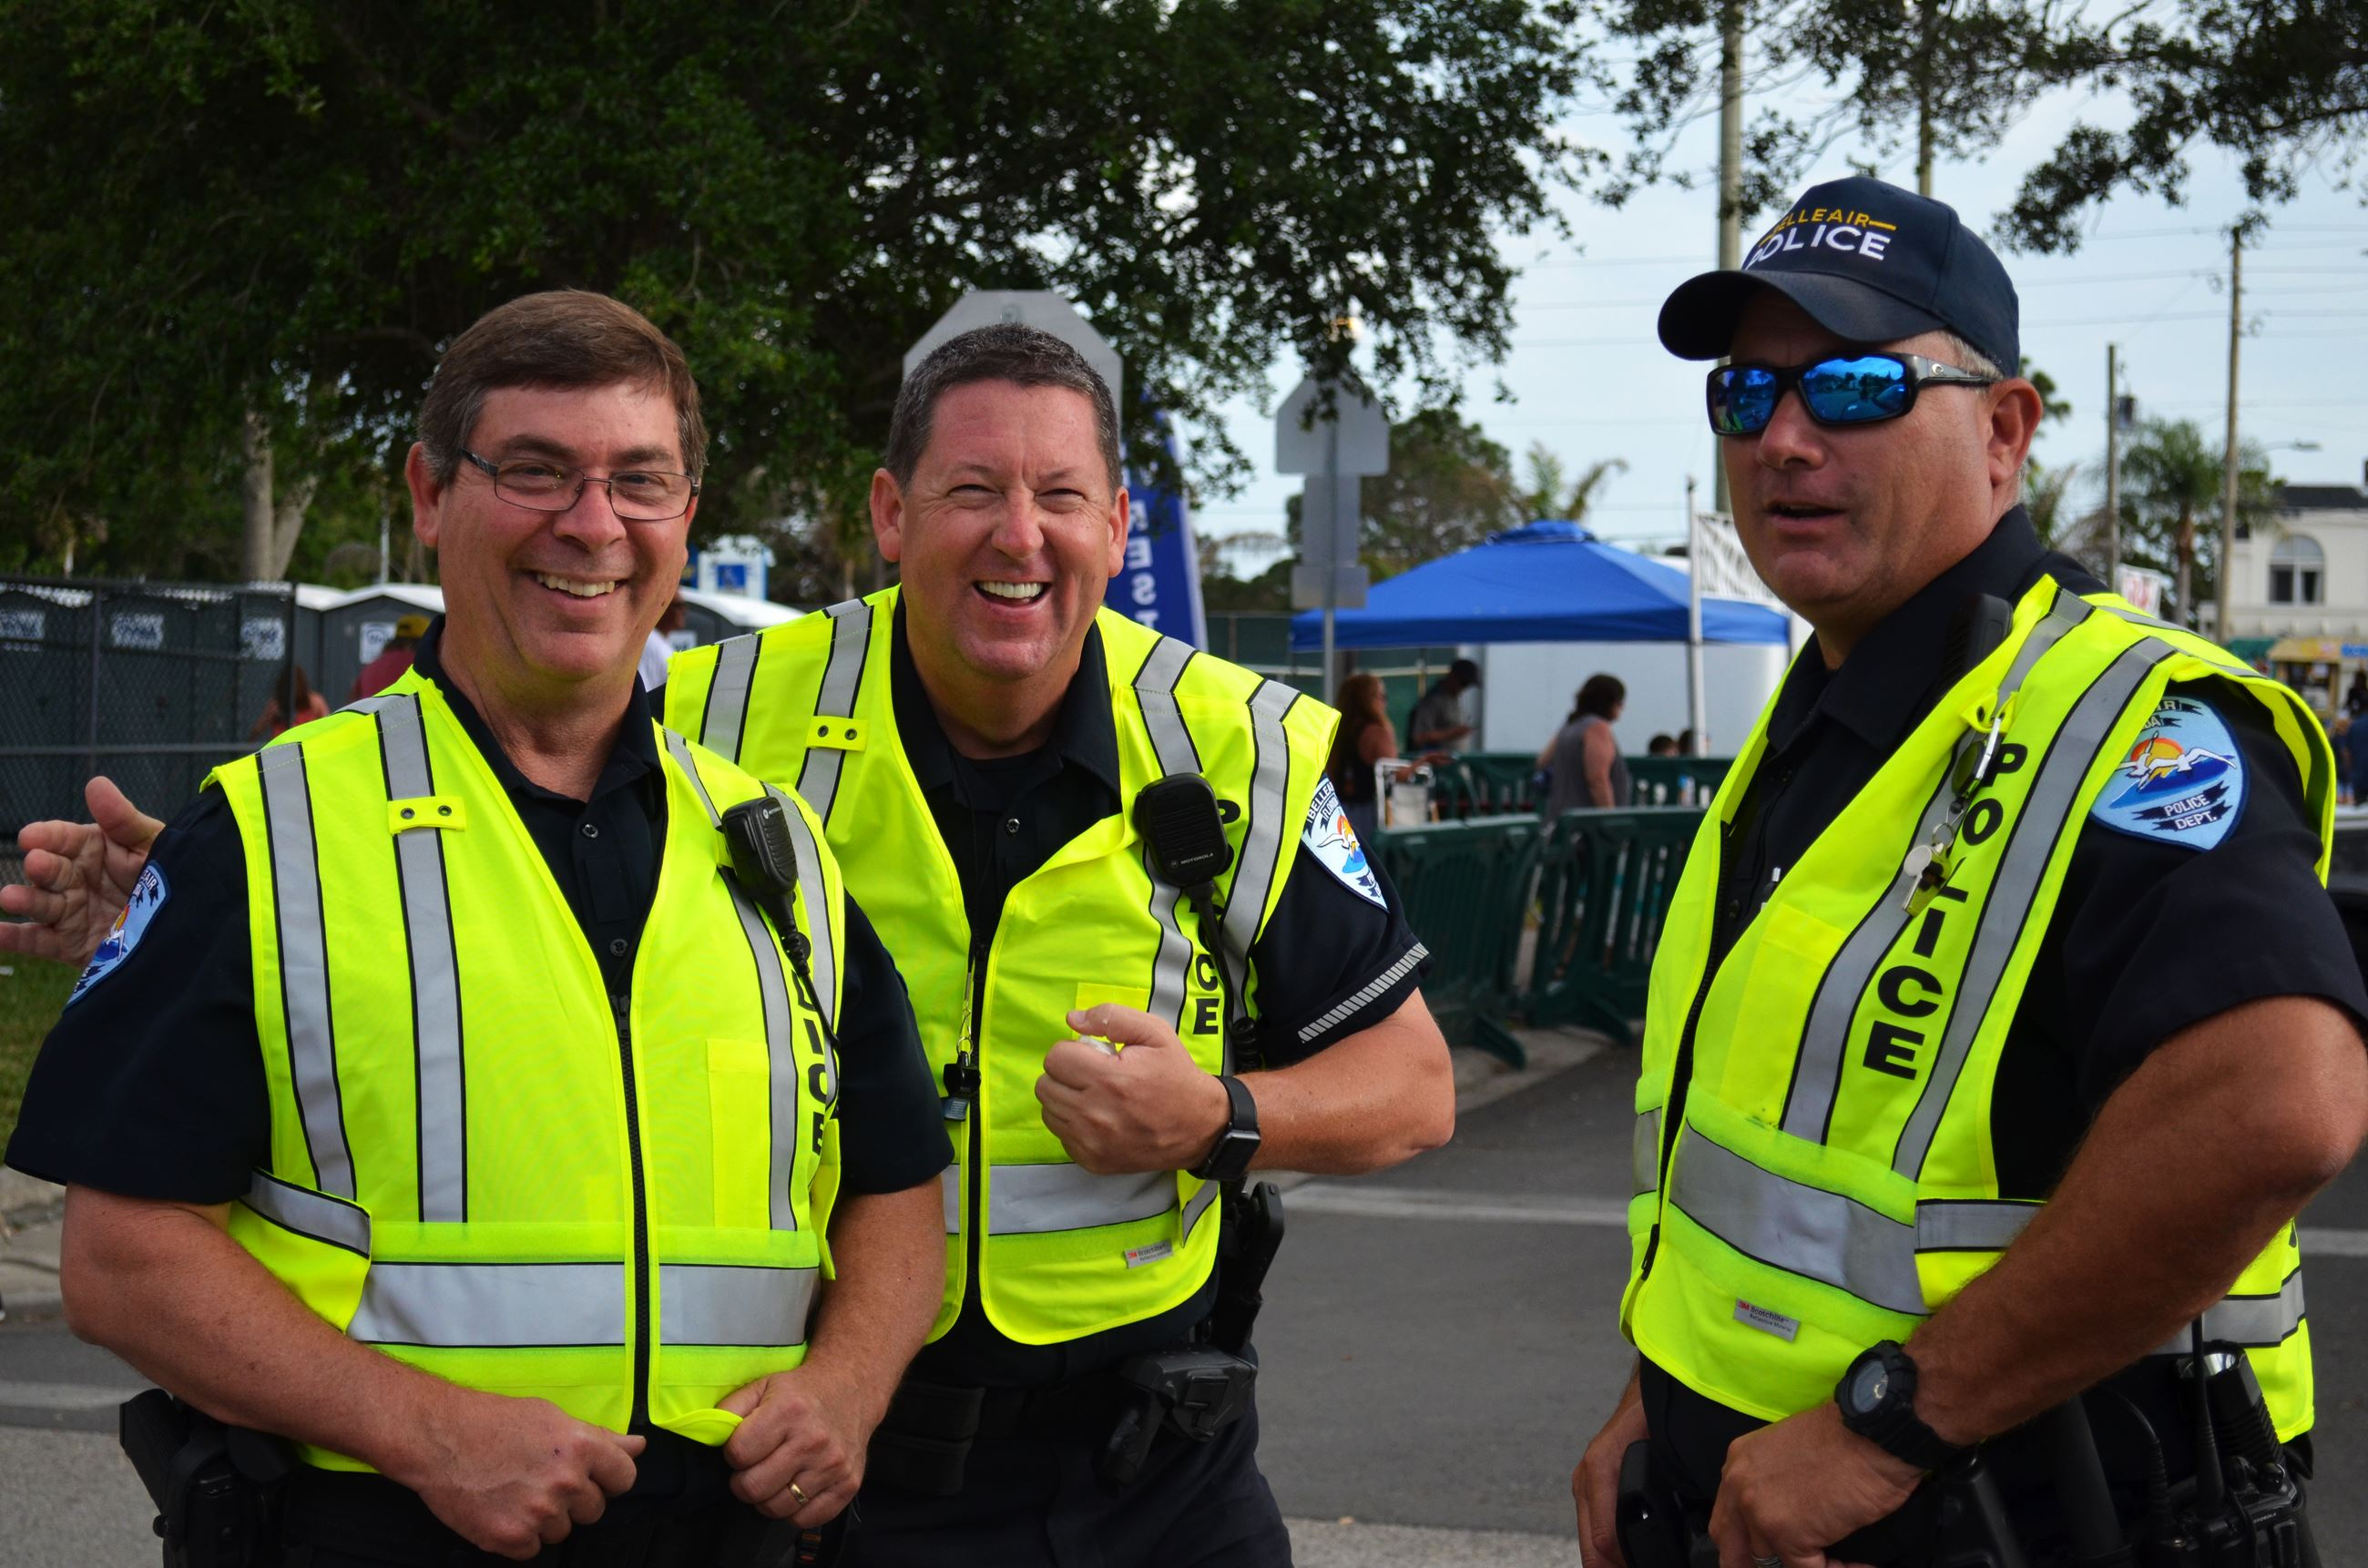 Belleair Police Officers in safety vest smile while working at a Town concert.